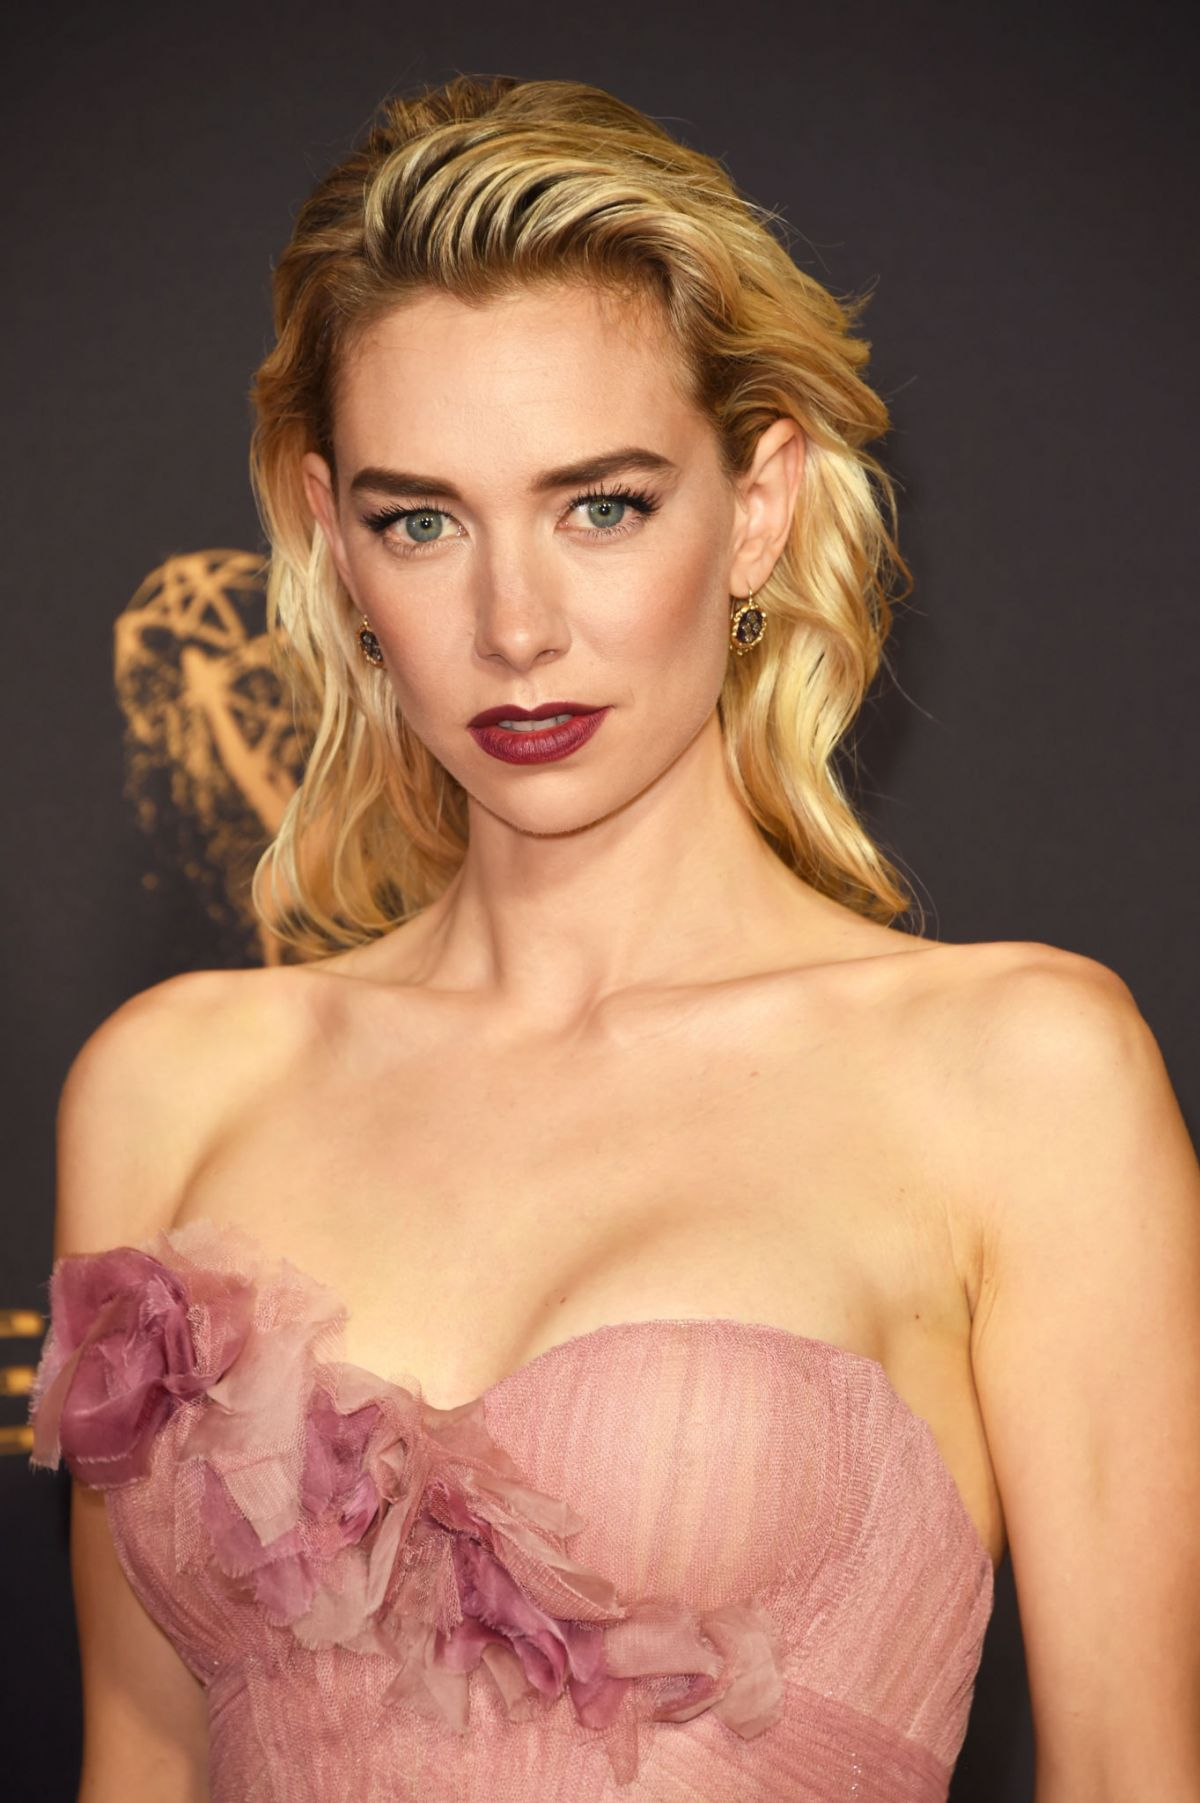 38 Hot Pictures Of Vanessa Kirby - Princess Margaret